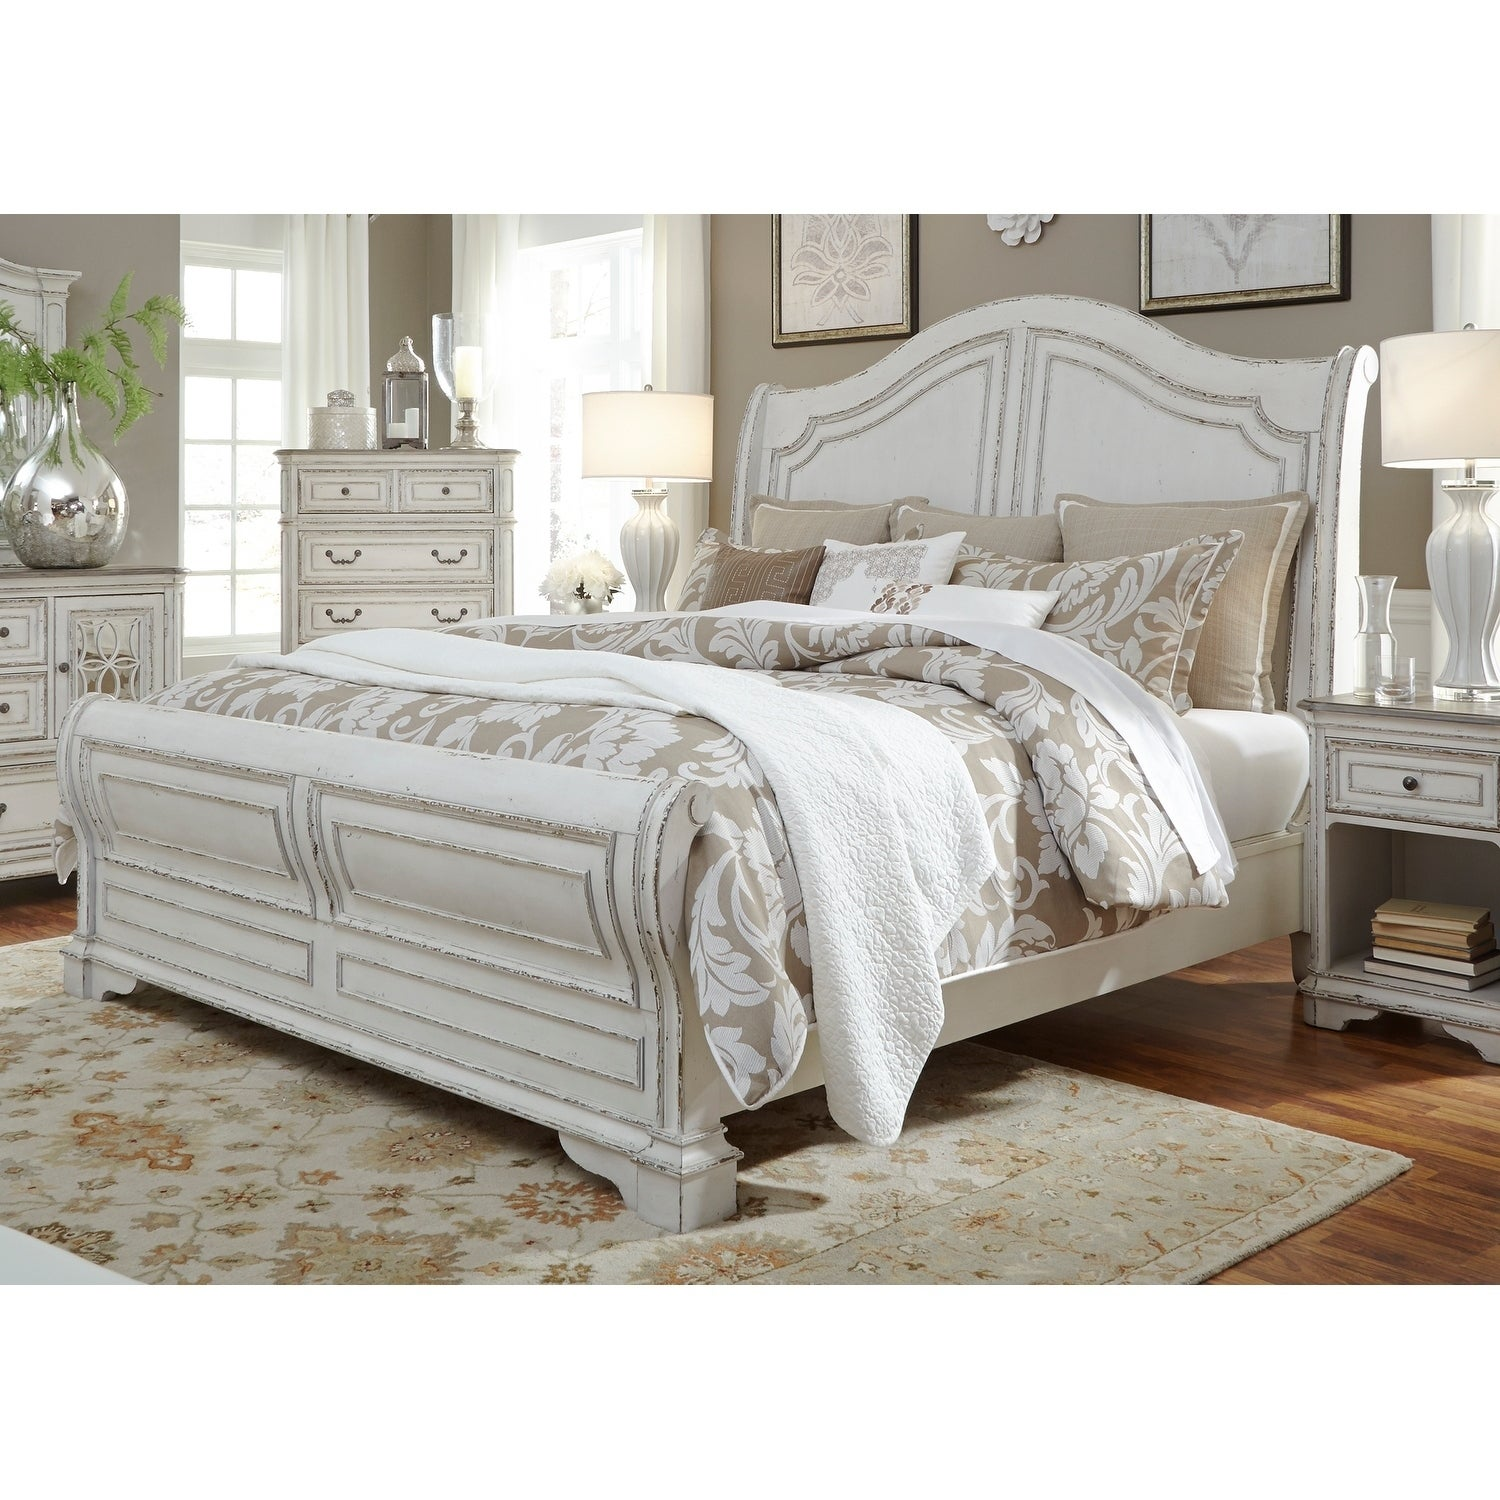 Distressed Bedroom Furniture | Find Great Furniture Deals Shopping at  Overstock.com - Distressed Bedroom Furniture Find Great Furniture Deals Shopping